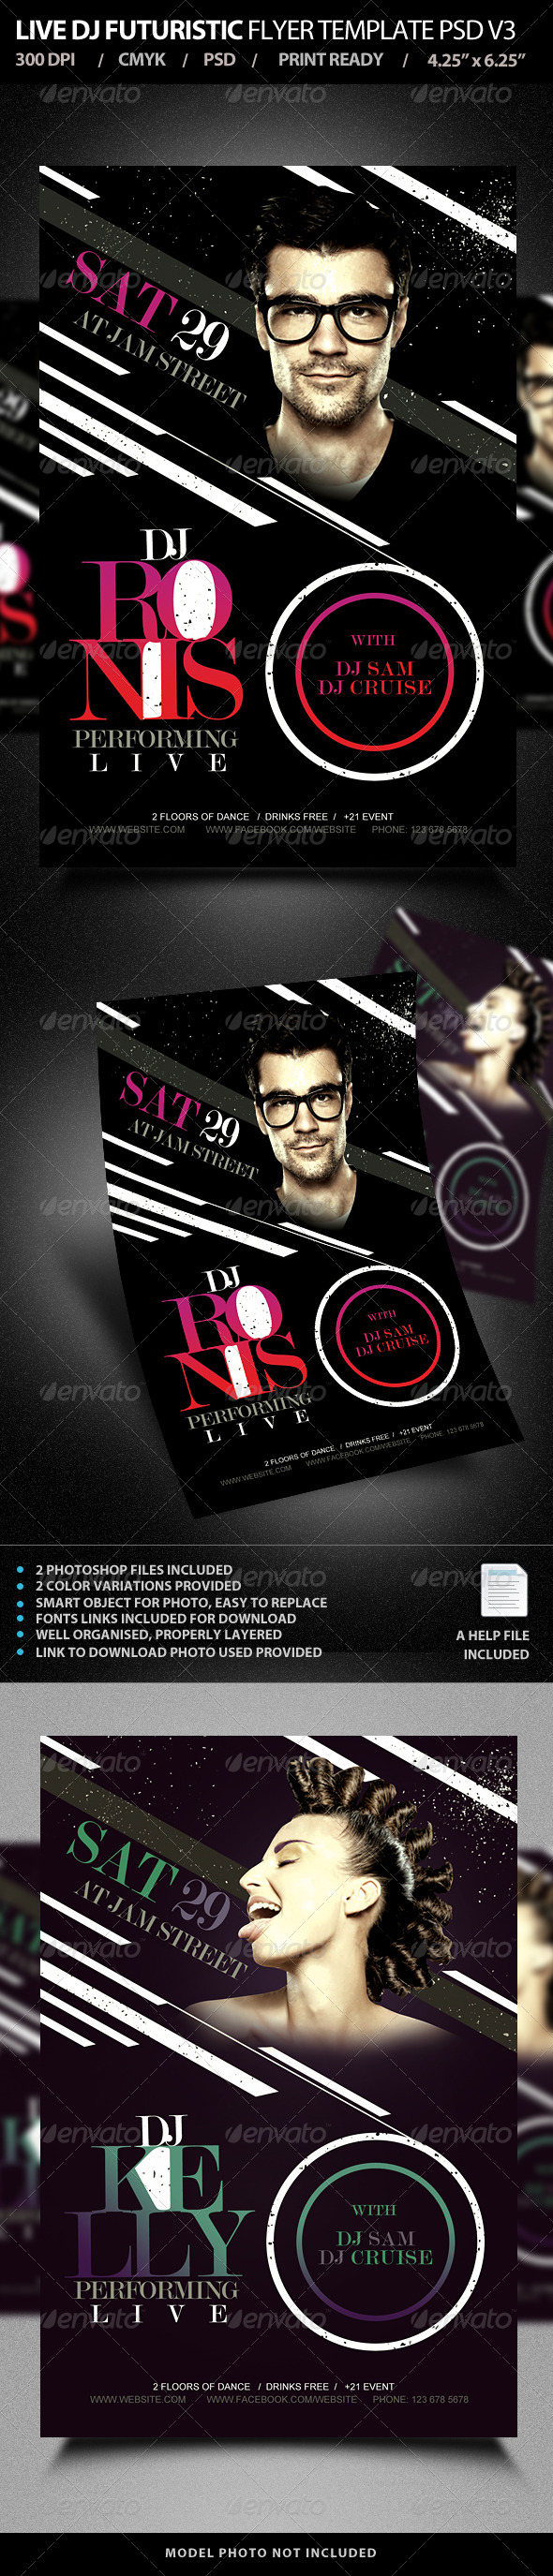 GraphicRiver Live DJ Flyer Template PSD V3 7603790